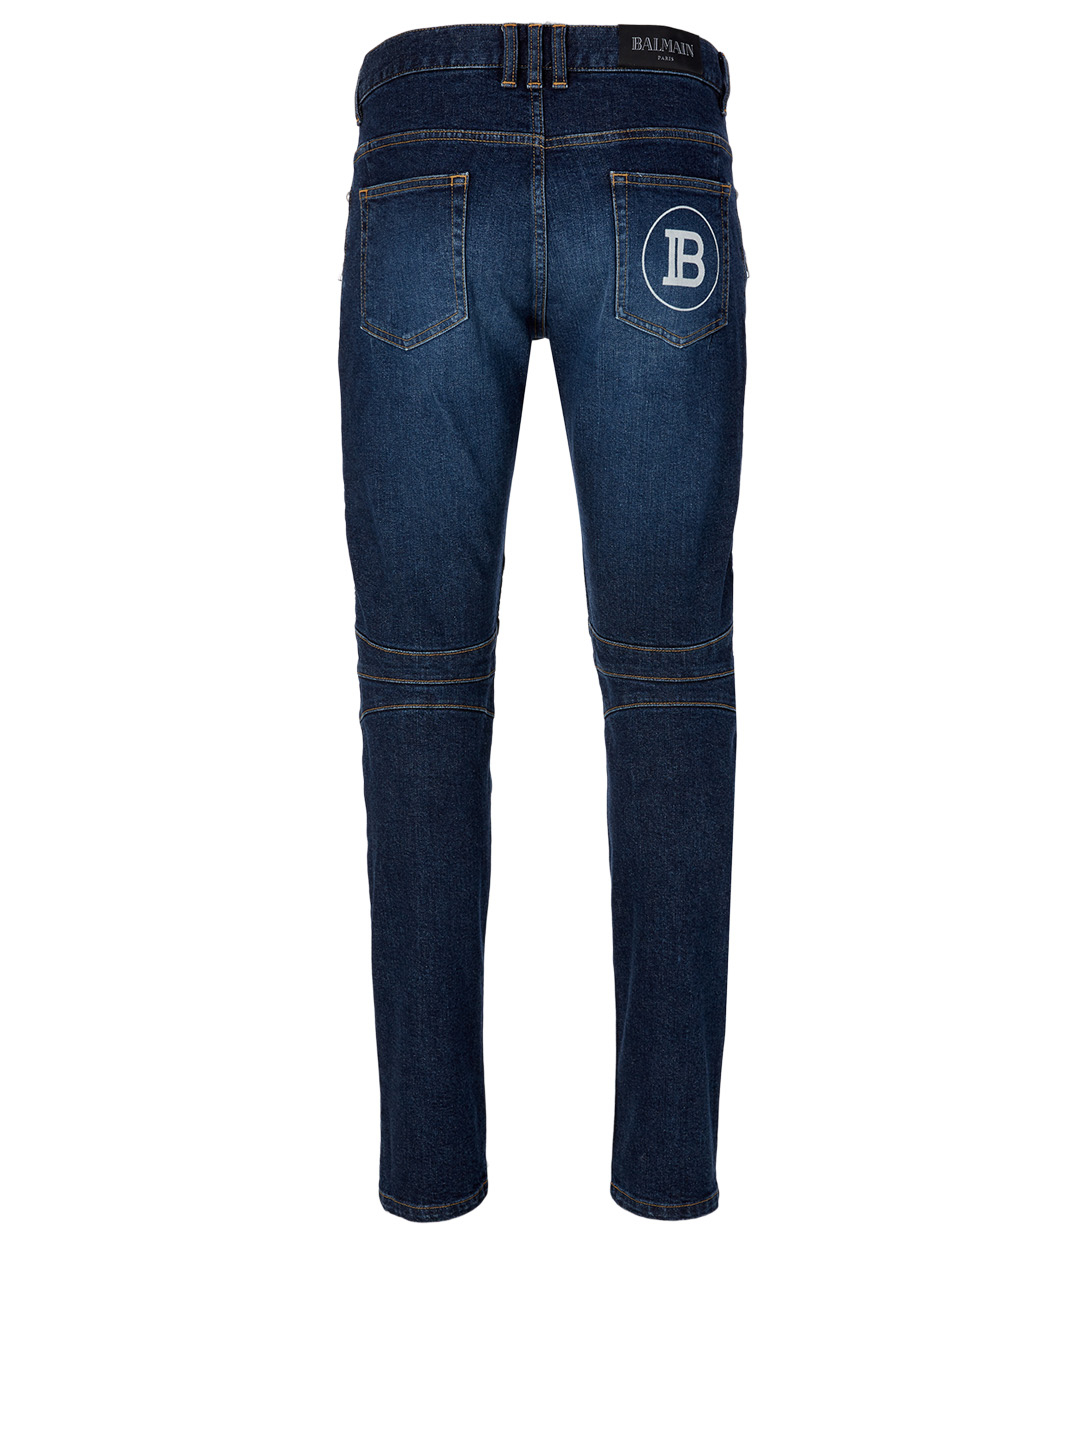 BALMAIN Tapered Moto Jeans Men's Blue